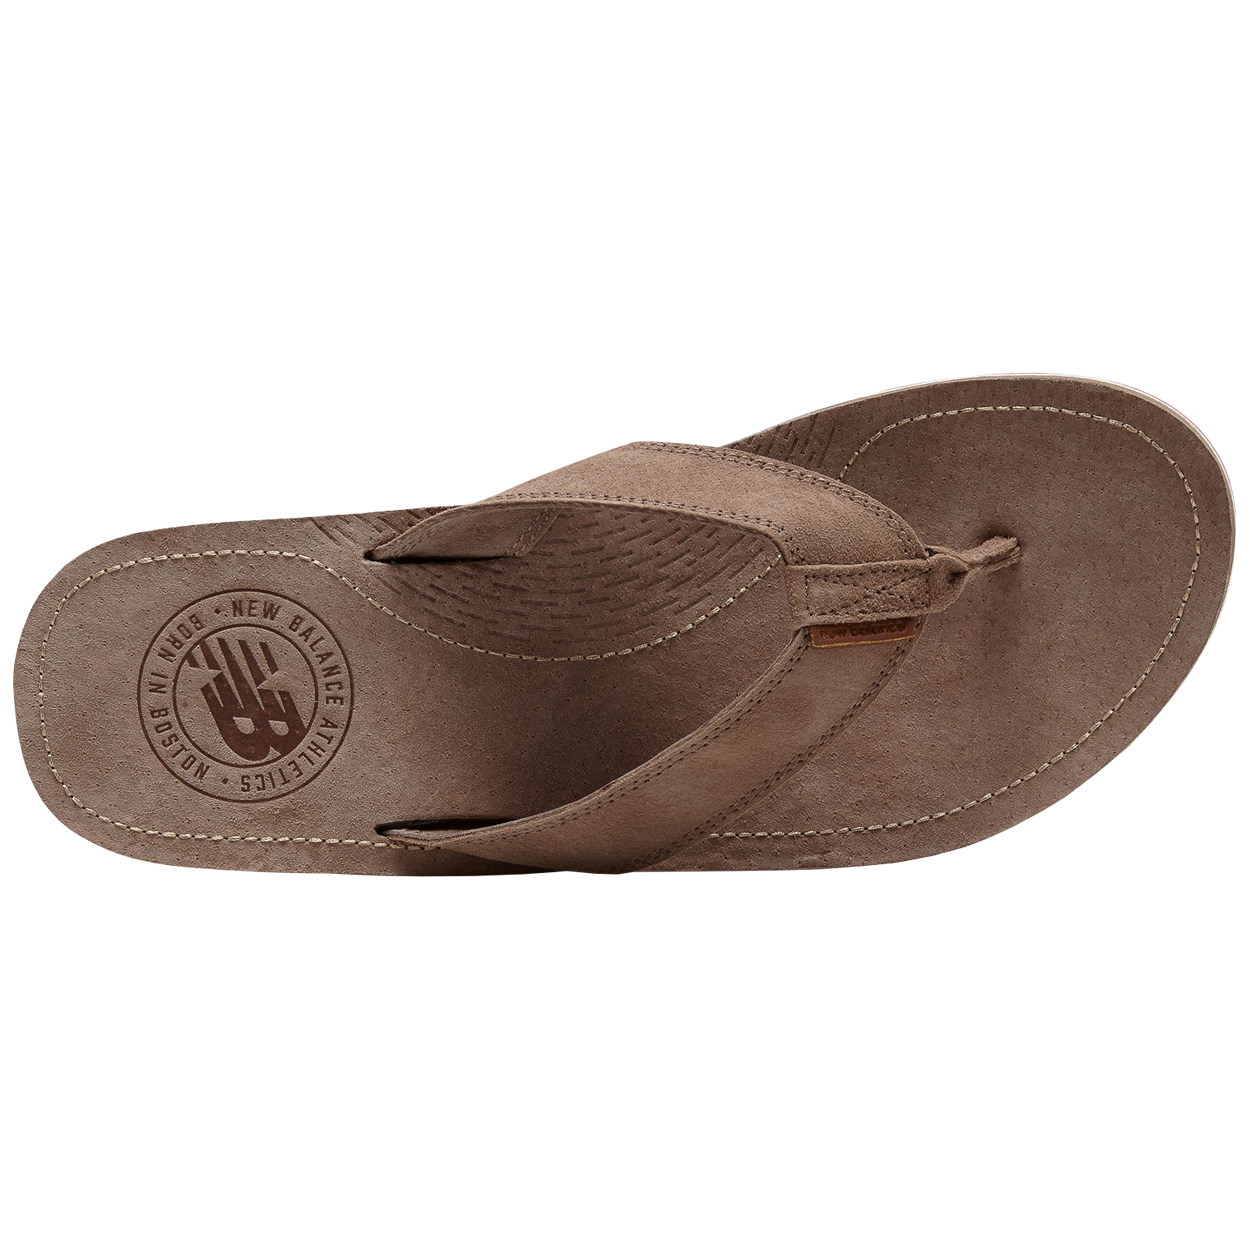 New-Balance-Golf-Men-039-s-Classic-Thong-Flip-Flop-Sandal-Brand-New thumbnail 7